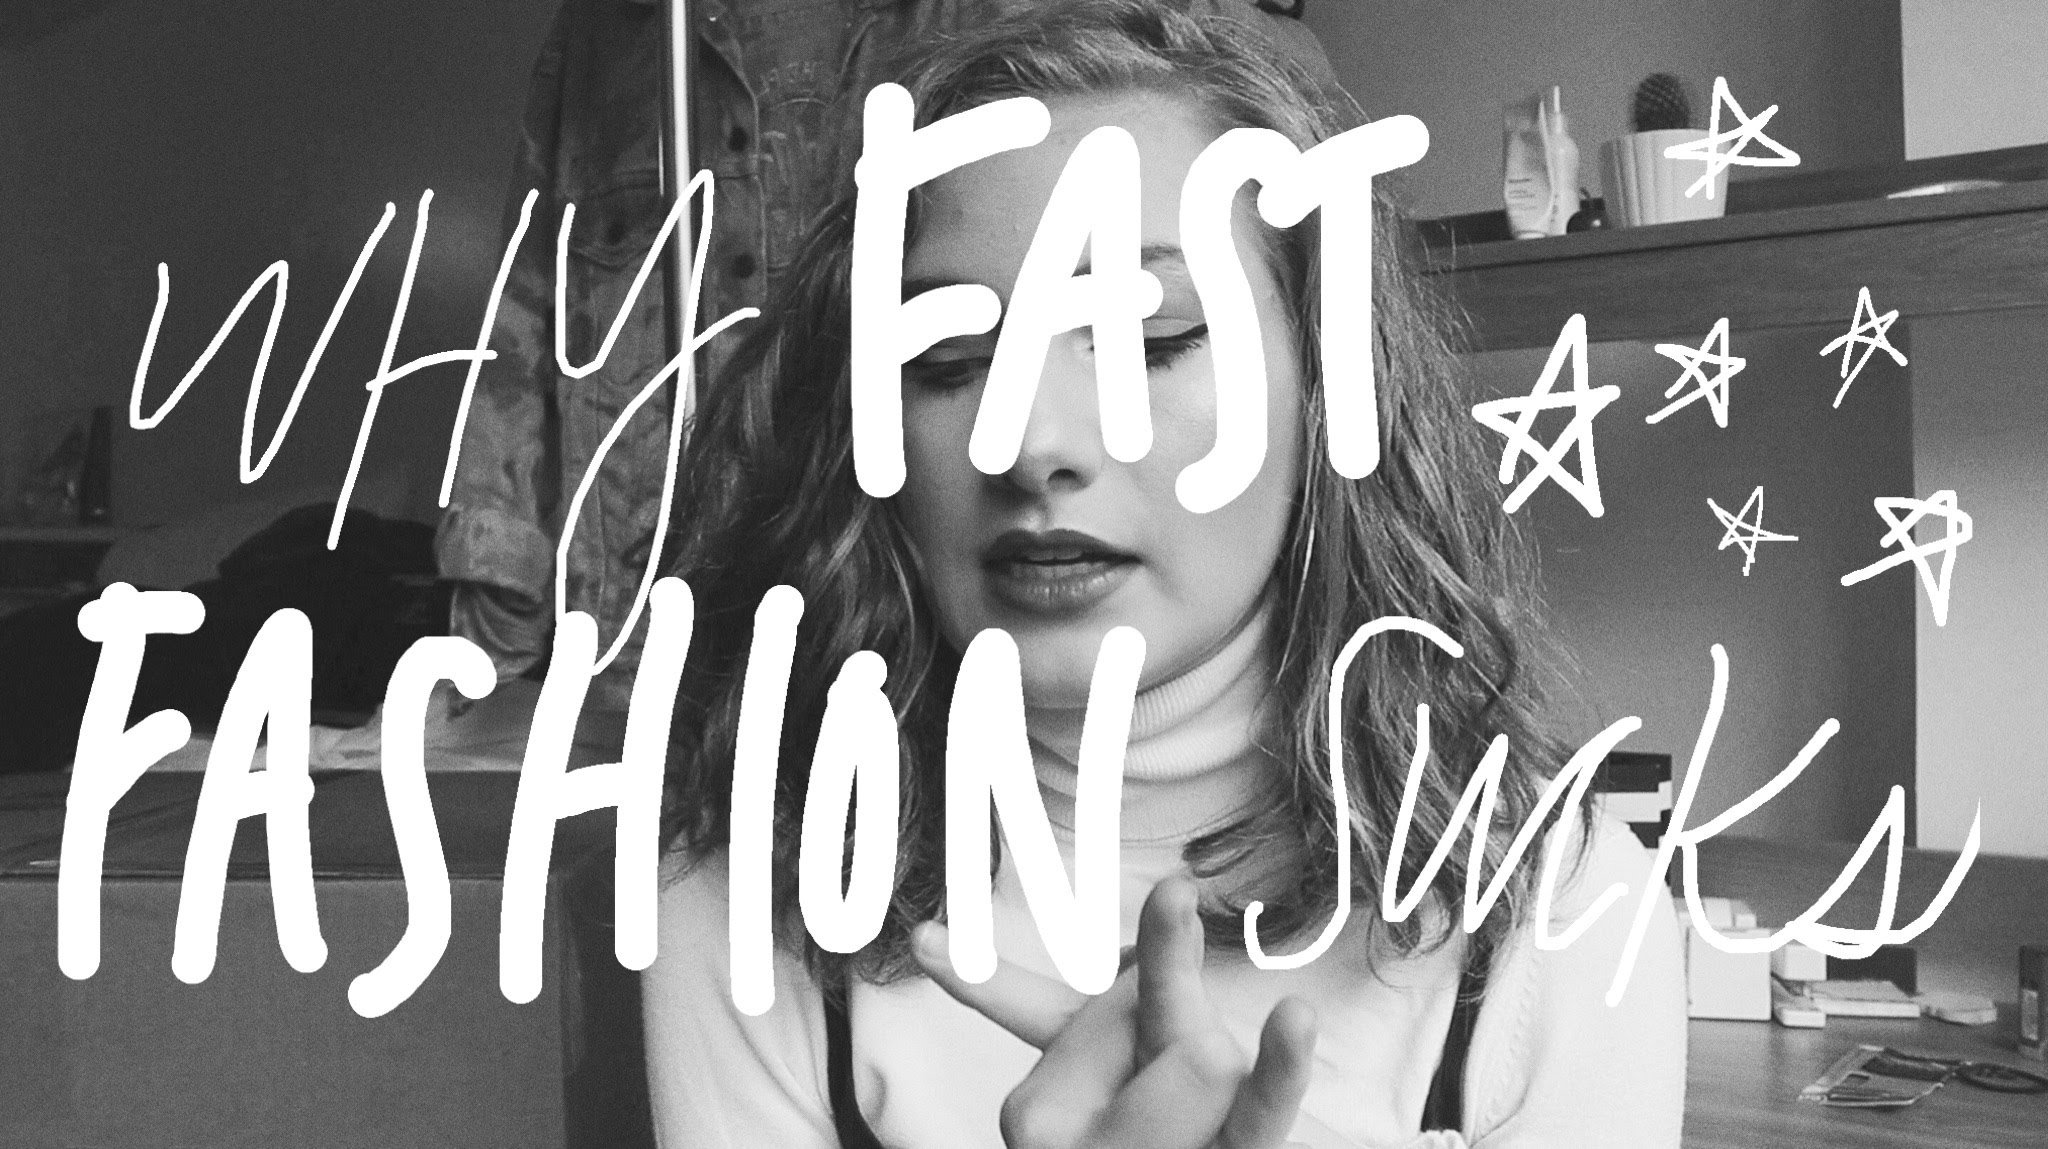 Why is fast fashion a bad thing?